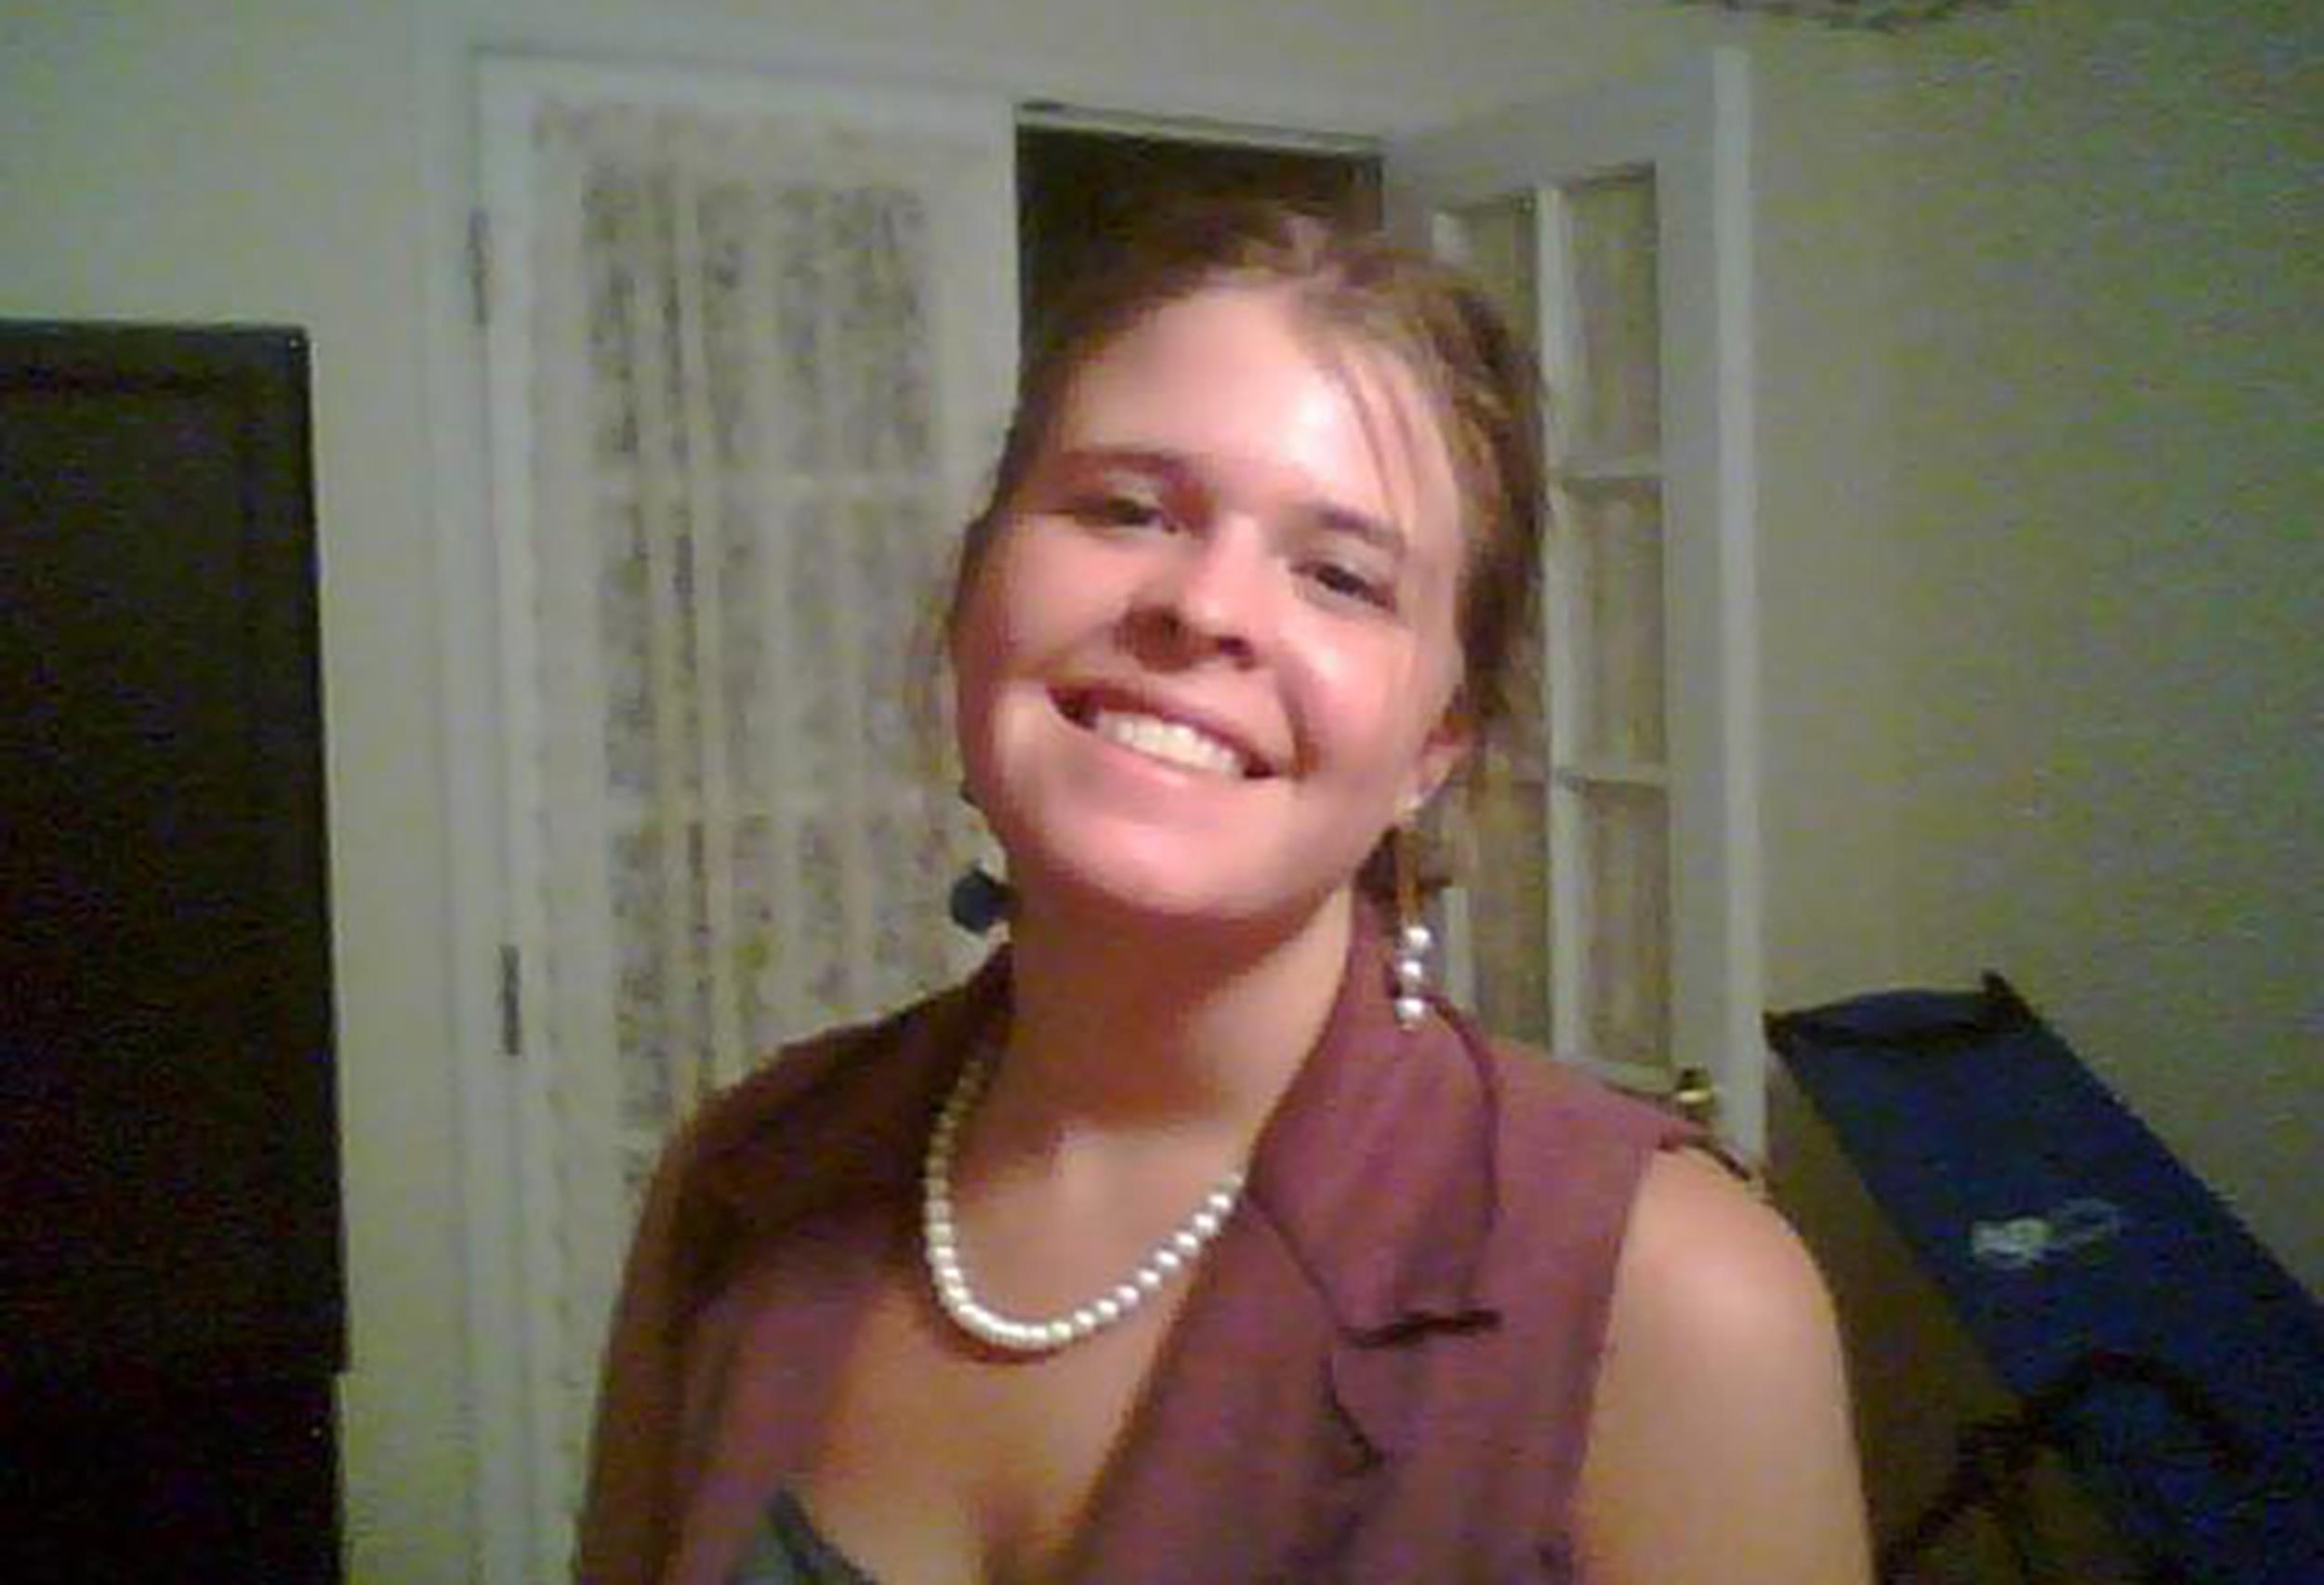 American ISIS Hostage KAYLA MUELLER Is Dead, Family Says - NBC News.